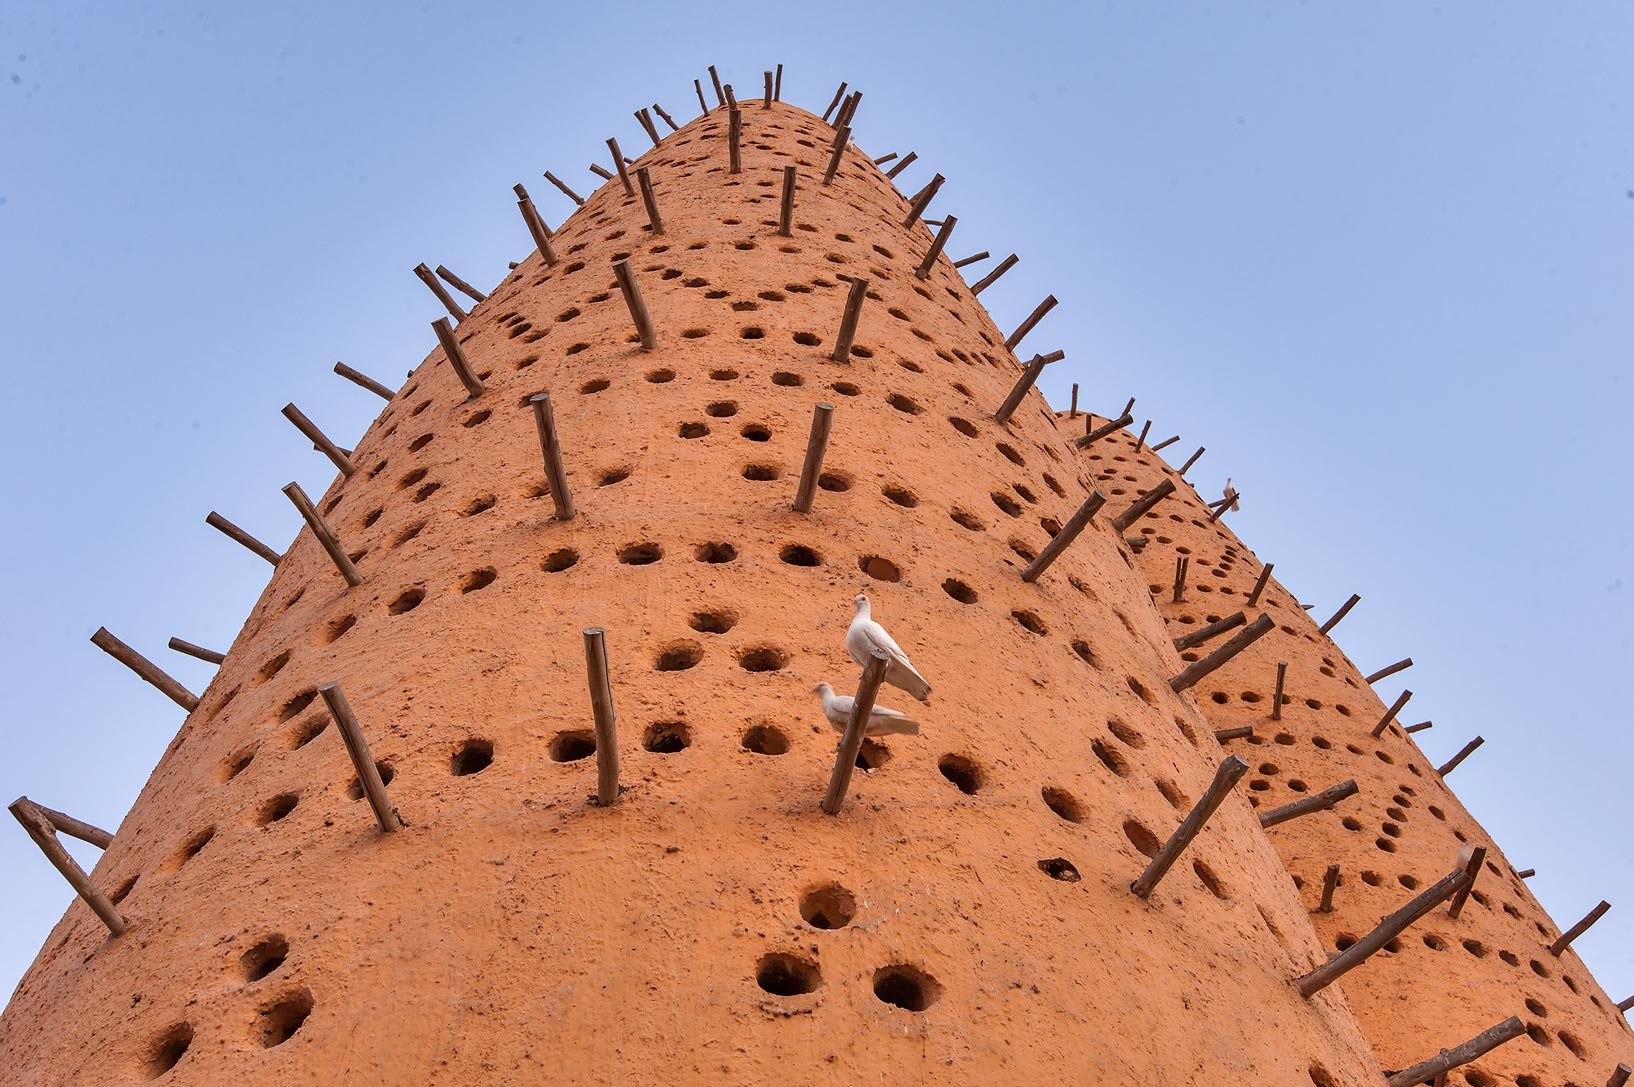 Dovecote (house for pigeons) in Katara Cultural Village. Doha, Qatar